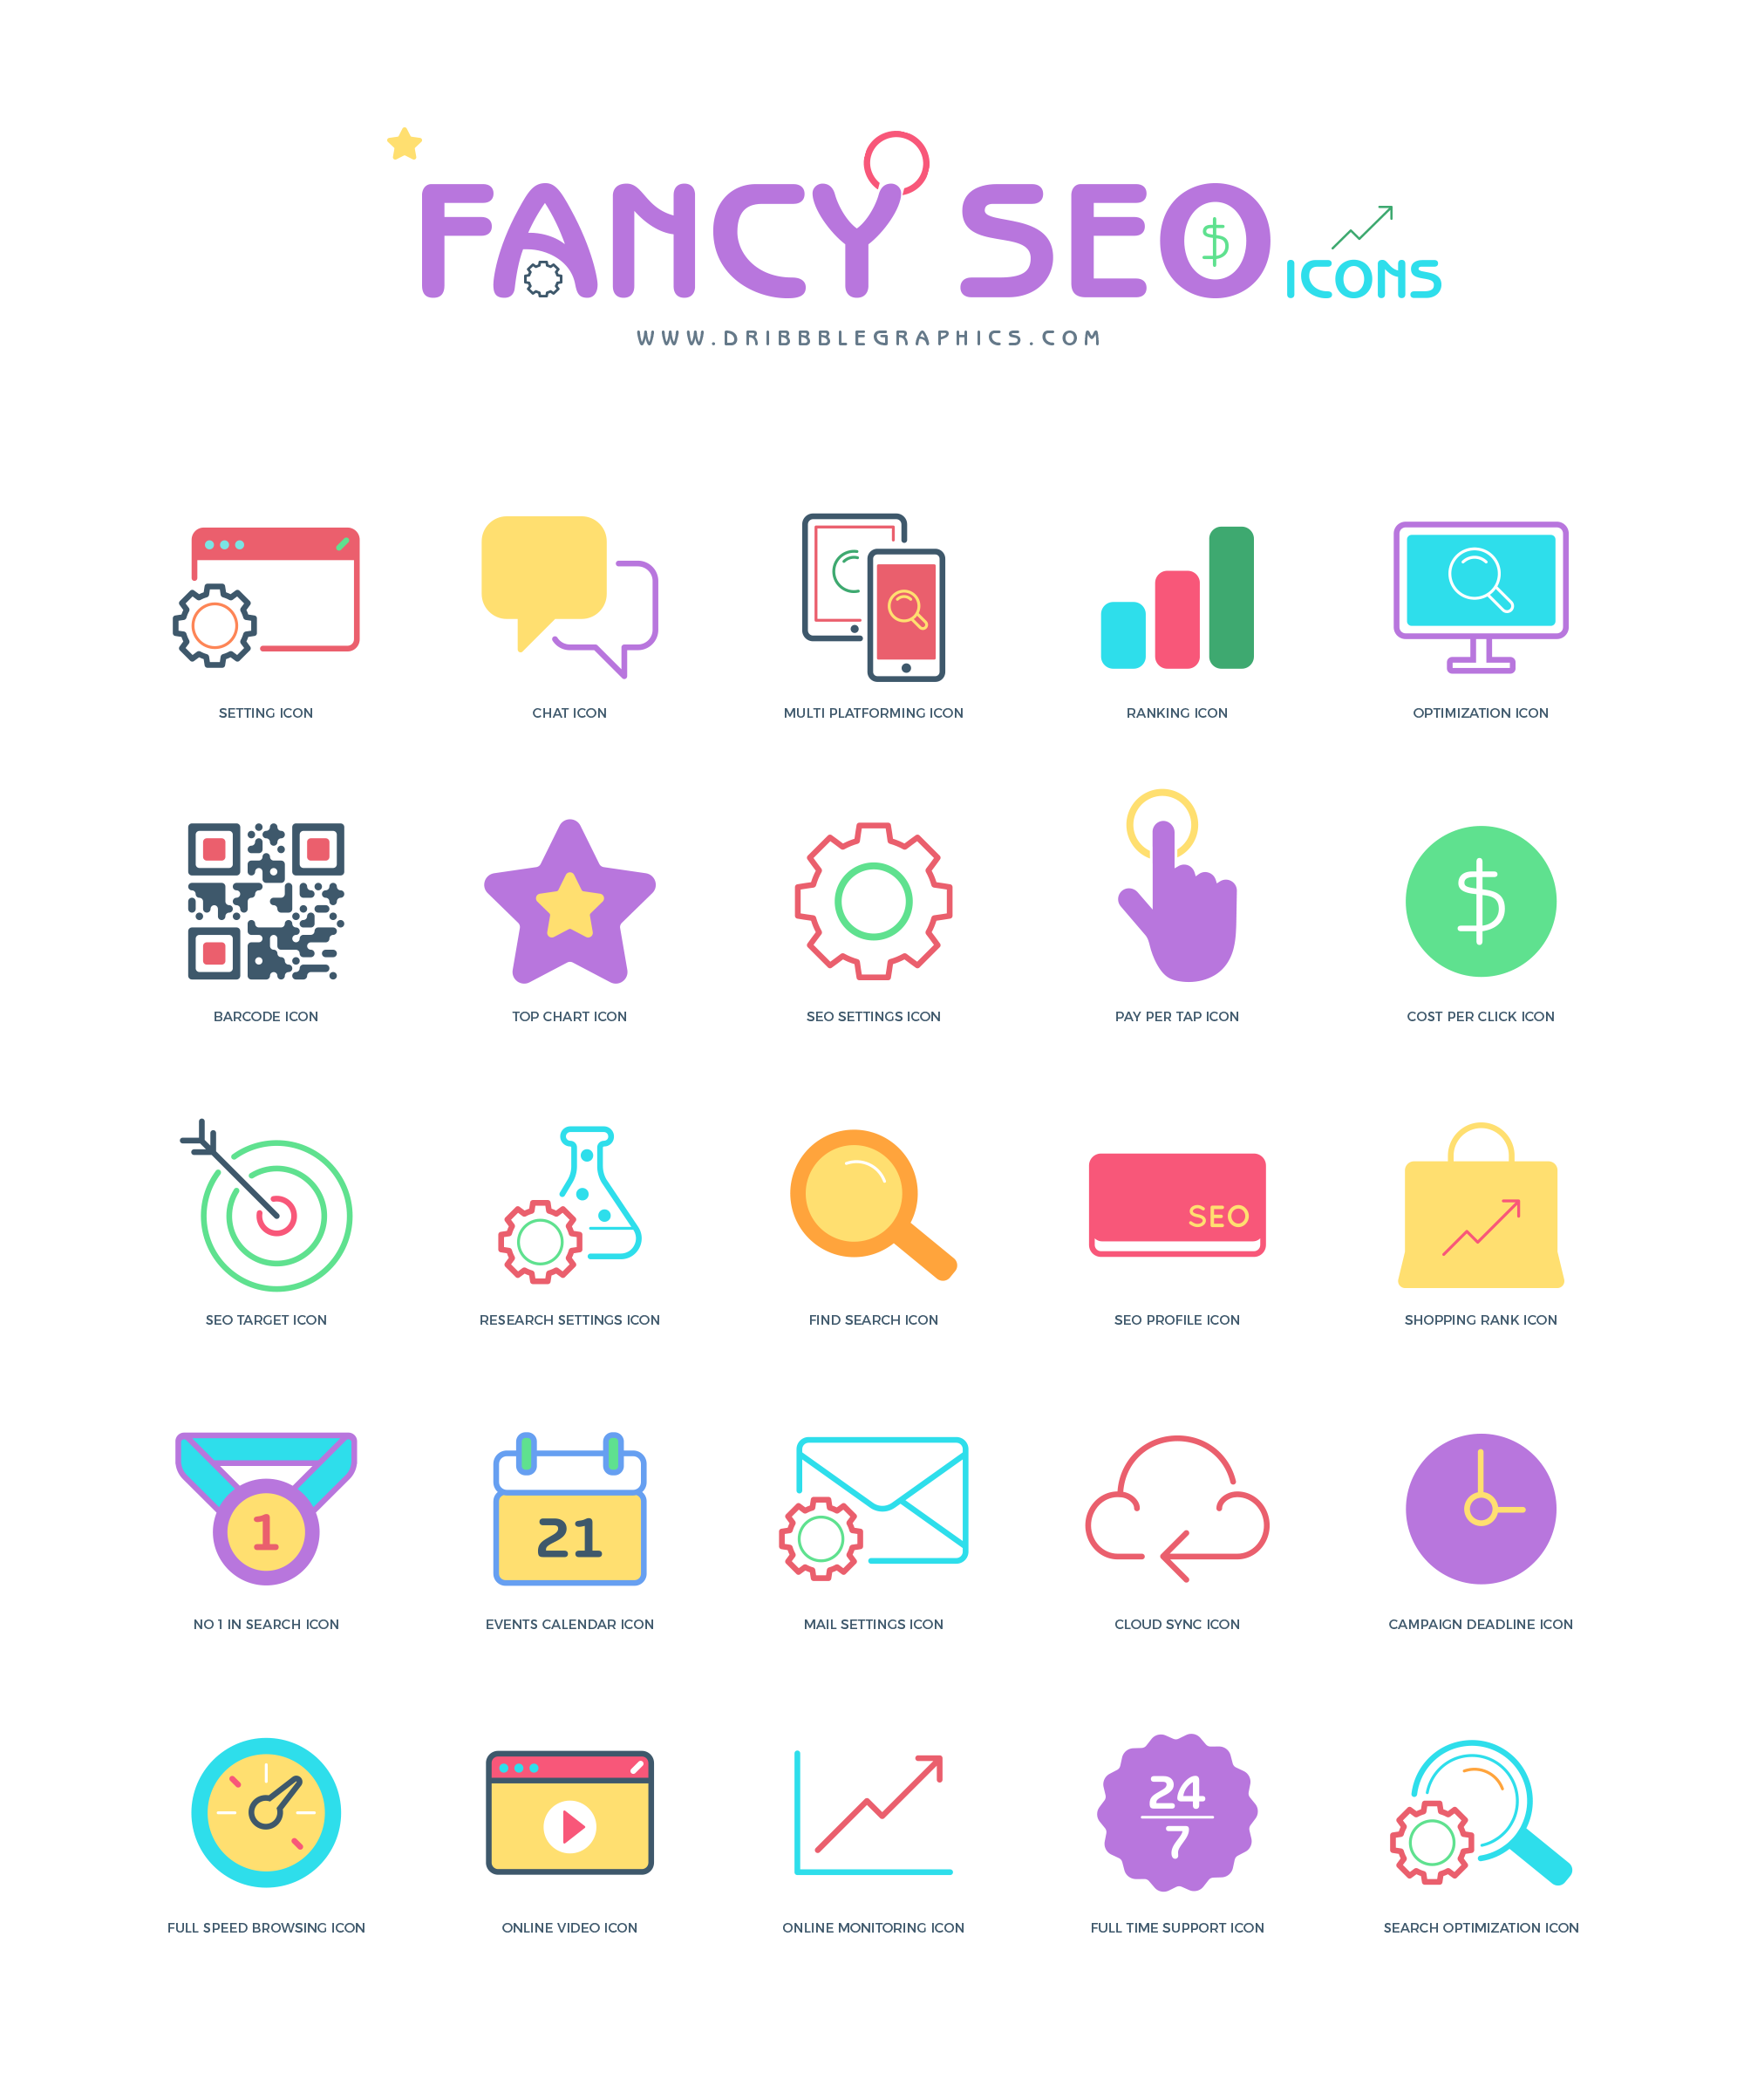 25-Free-Flat-Fancy-Seo-Icons-2018